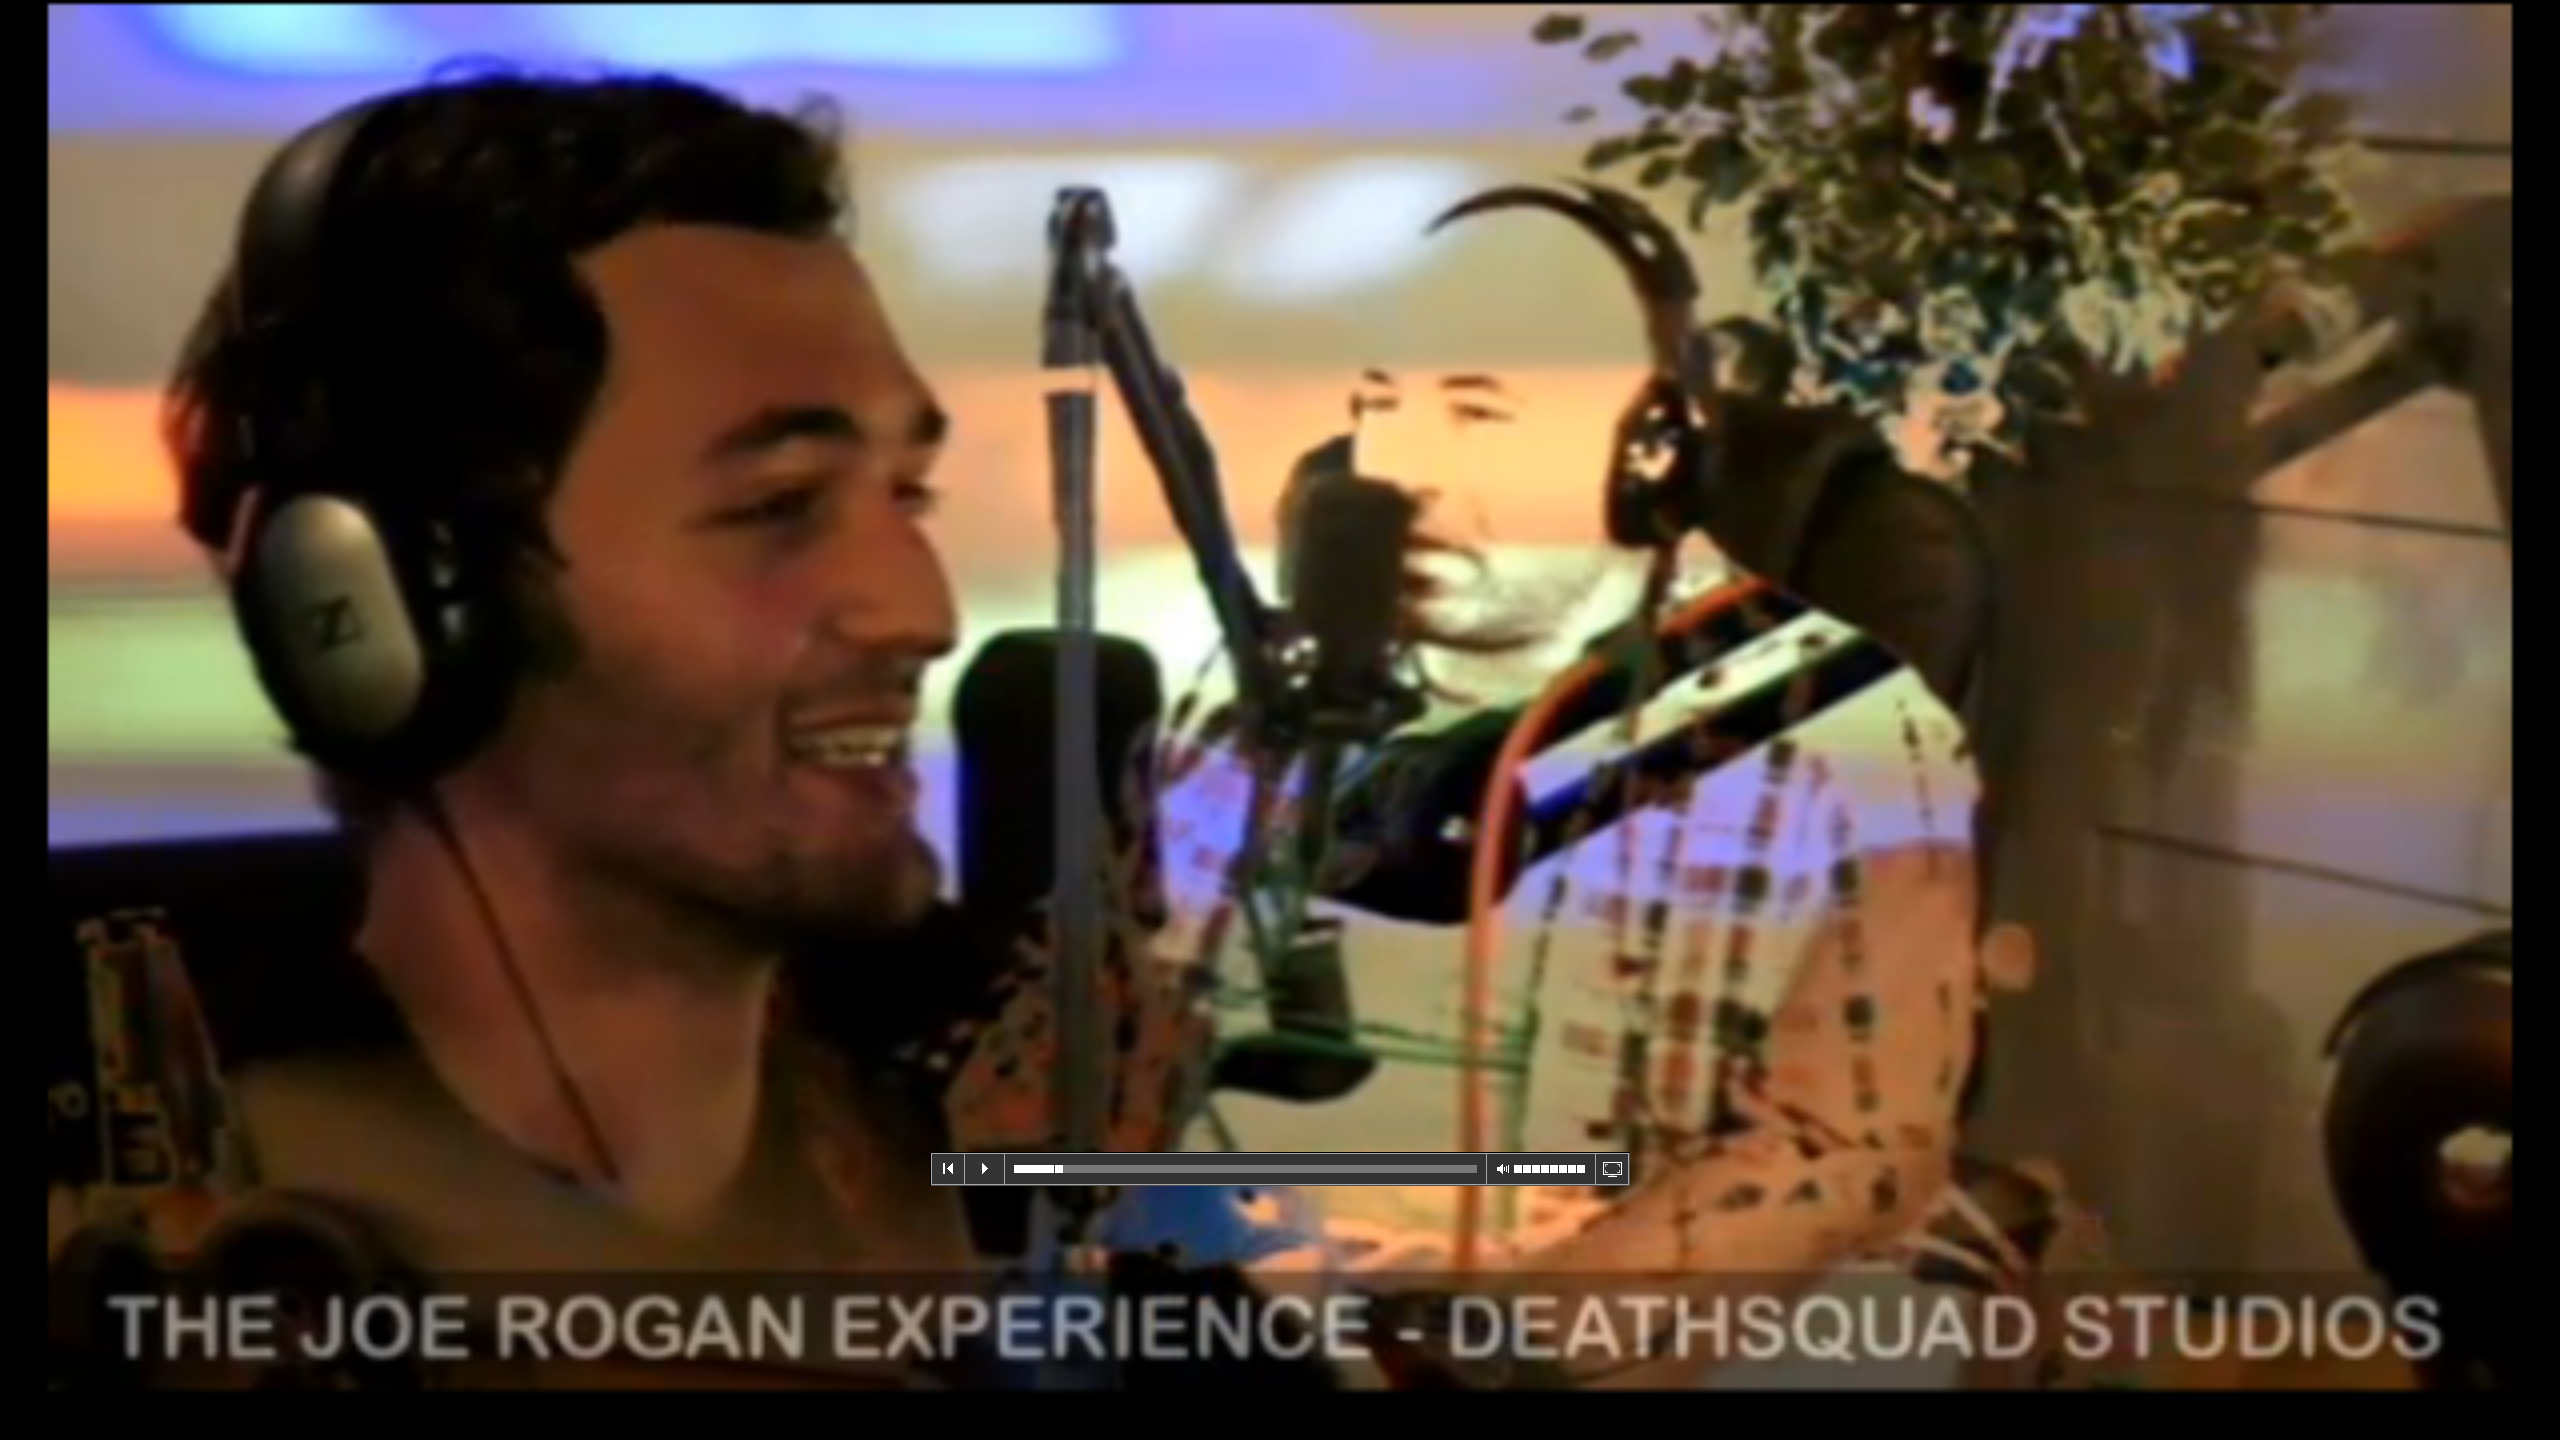 The Joe Rogan Experience #194 – Jason Silva, Brian Redban